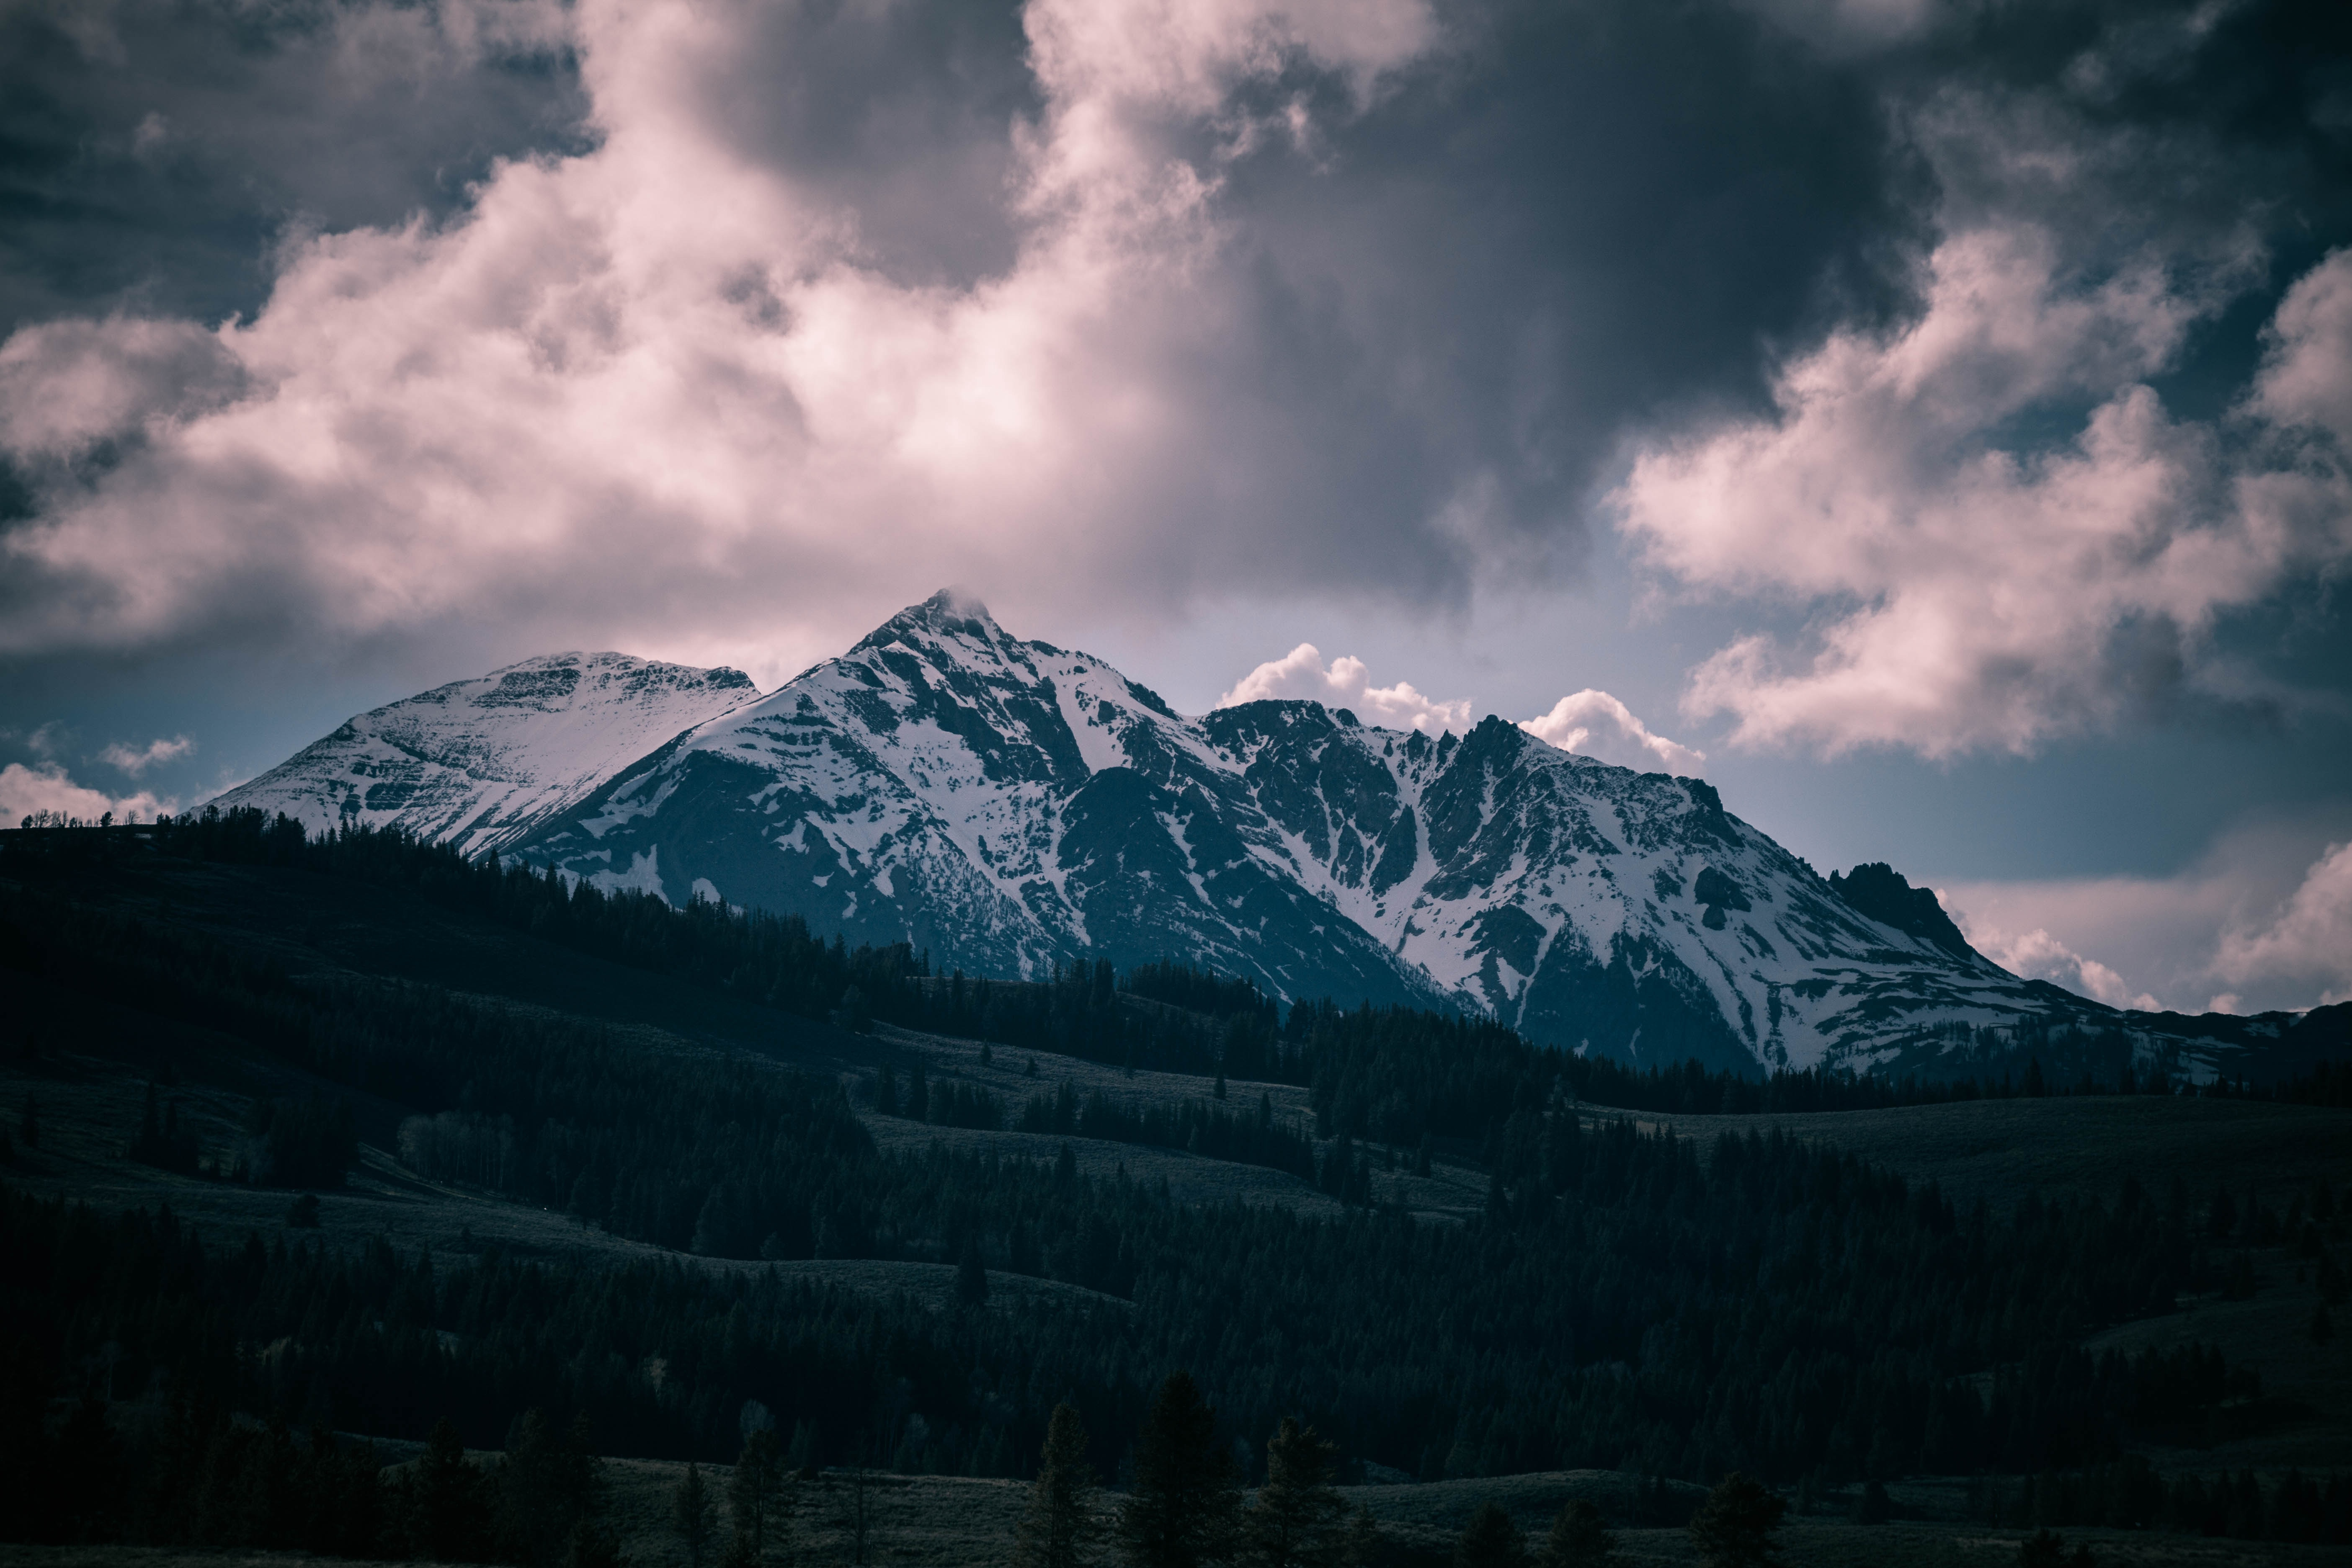 Storm clouds and mountains